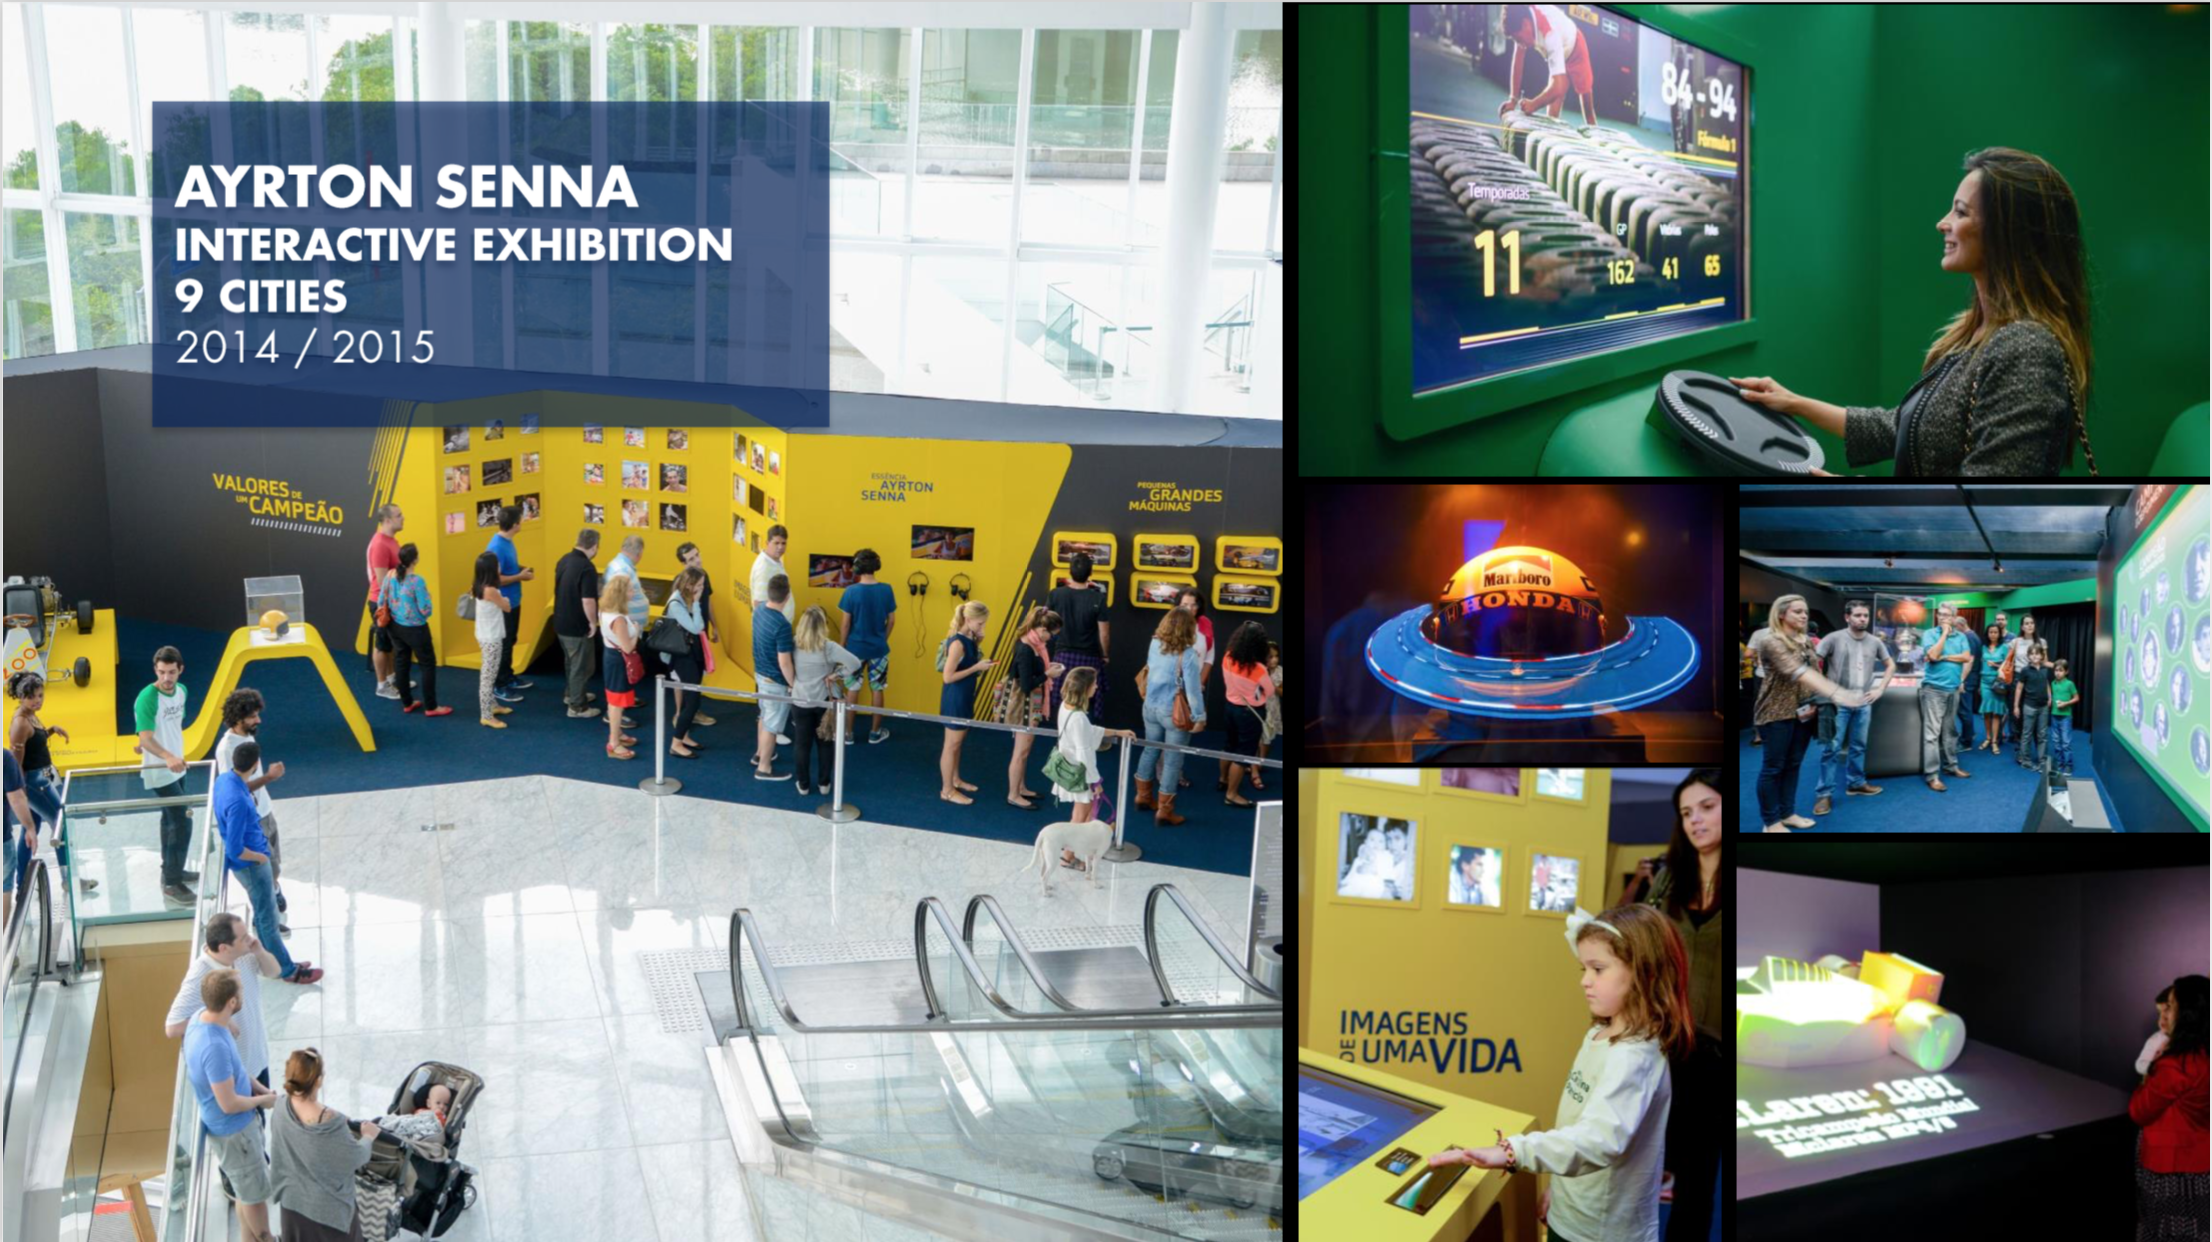 Ayrton Senna Interactive Exhibition